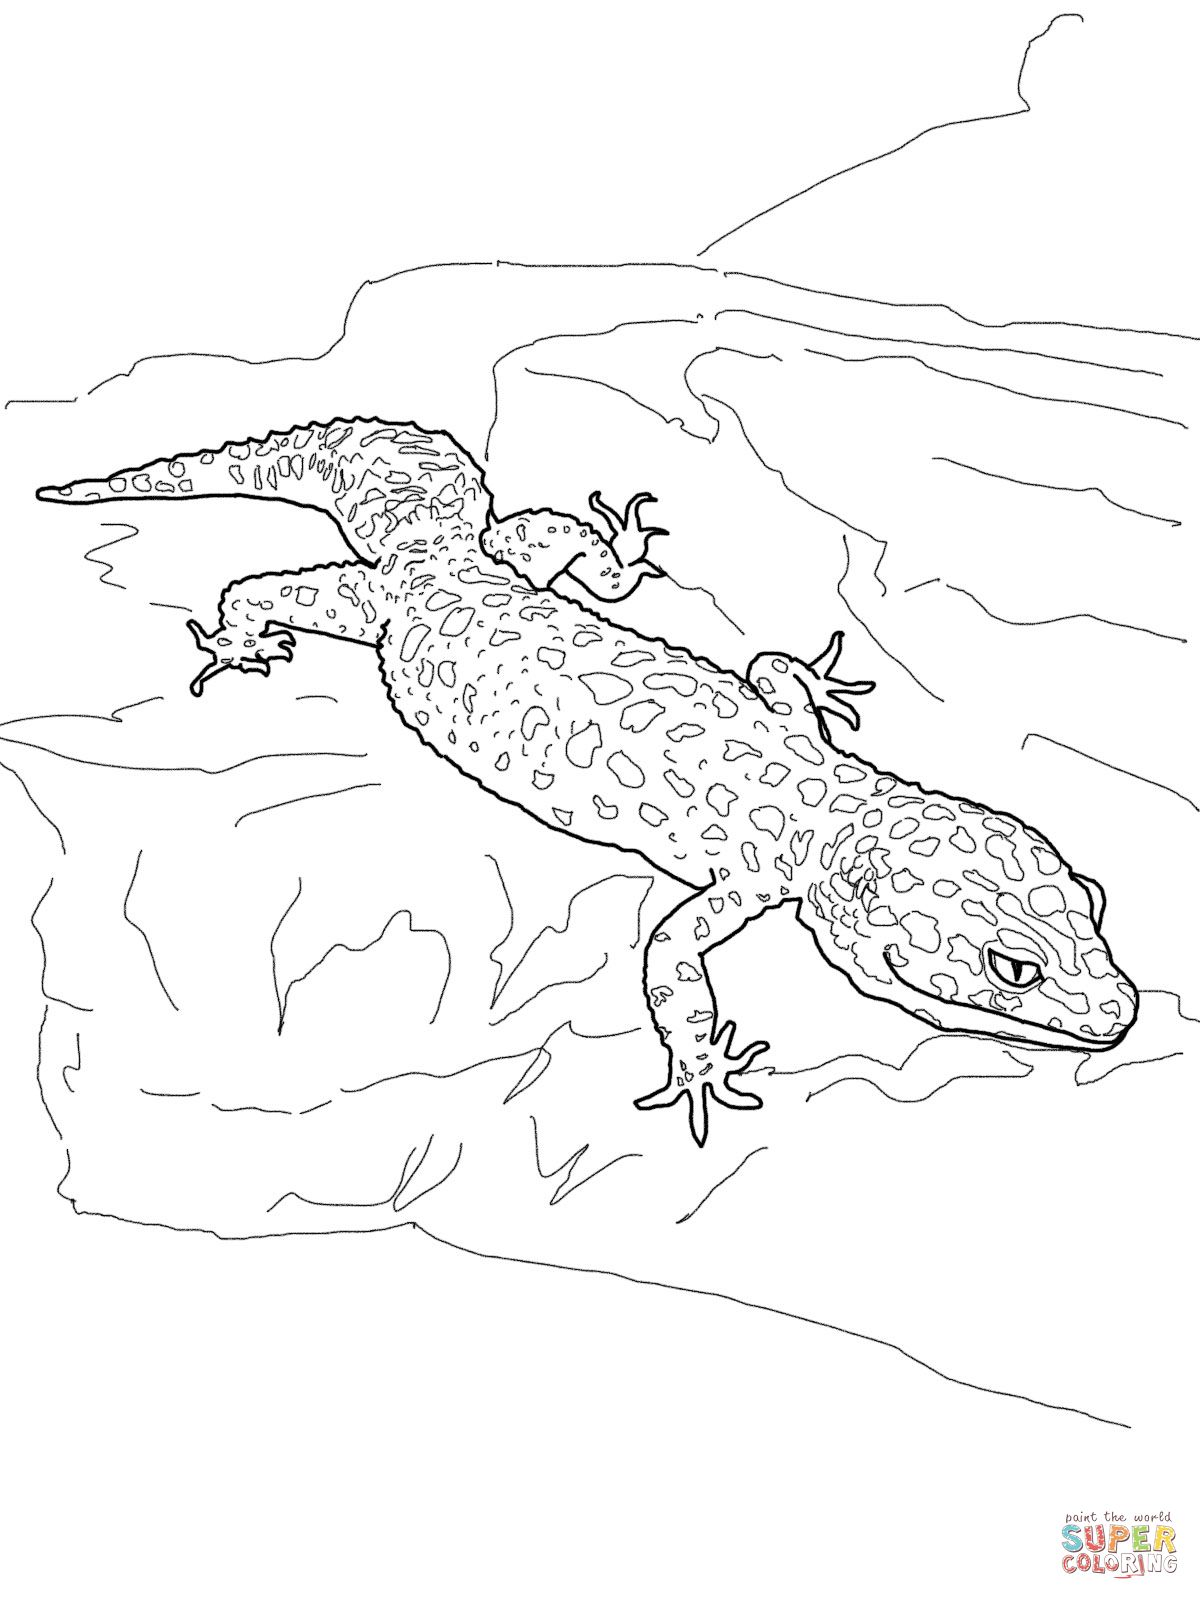 Leopard Gecko Coloring Page Supercoloring Com Cartoon Lizard